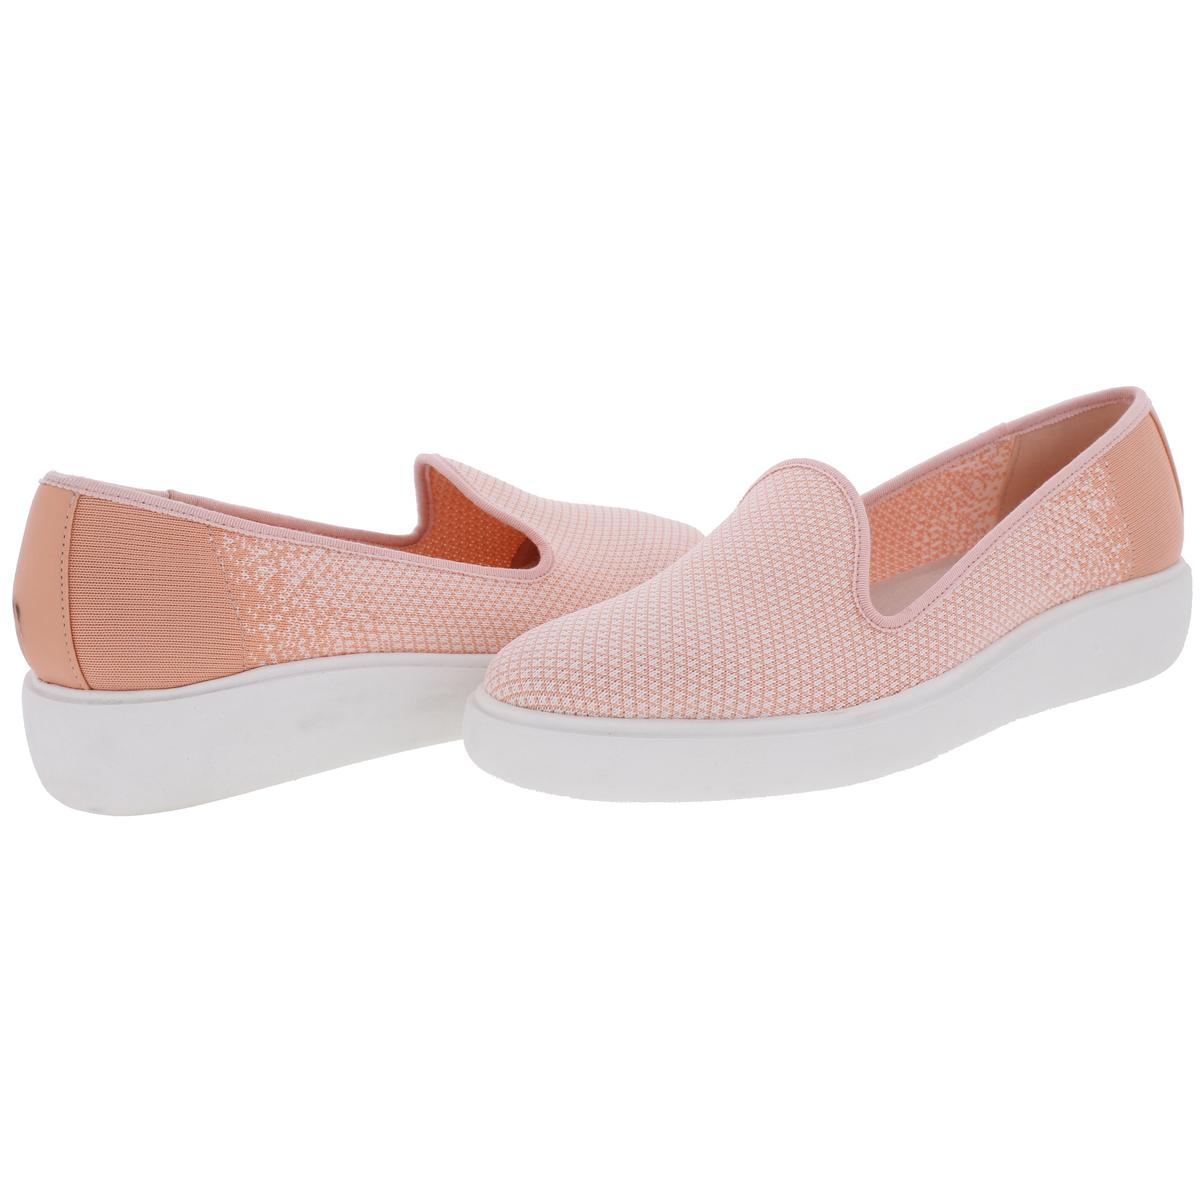 IMNYC-Isaac-Mizrahi-Womens-Kimberly-Knit-Sport-Casual-Loafers-Shoes-BHFO-2805 thumbnail 11